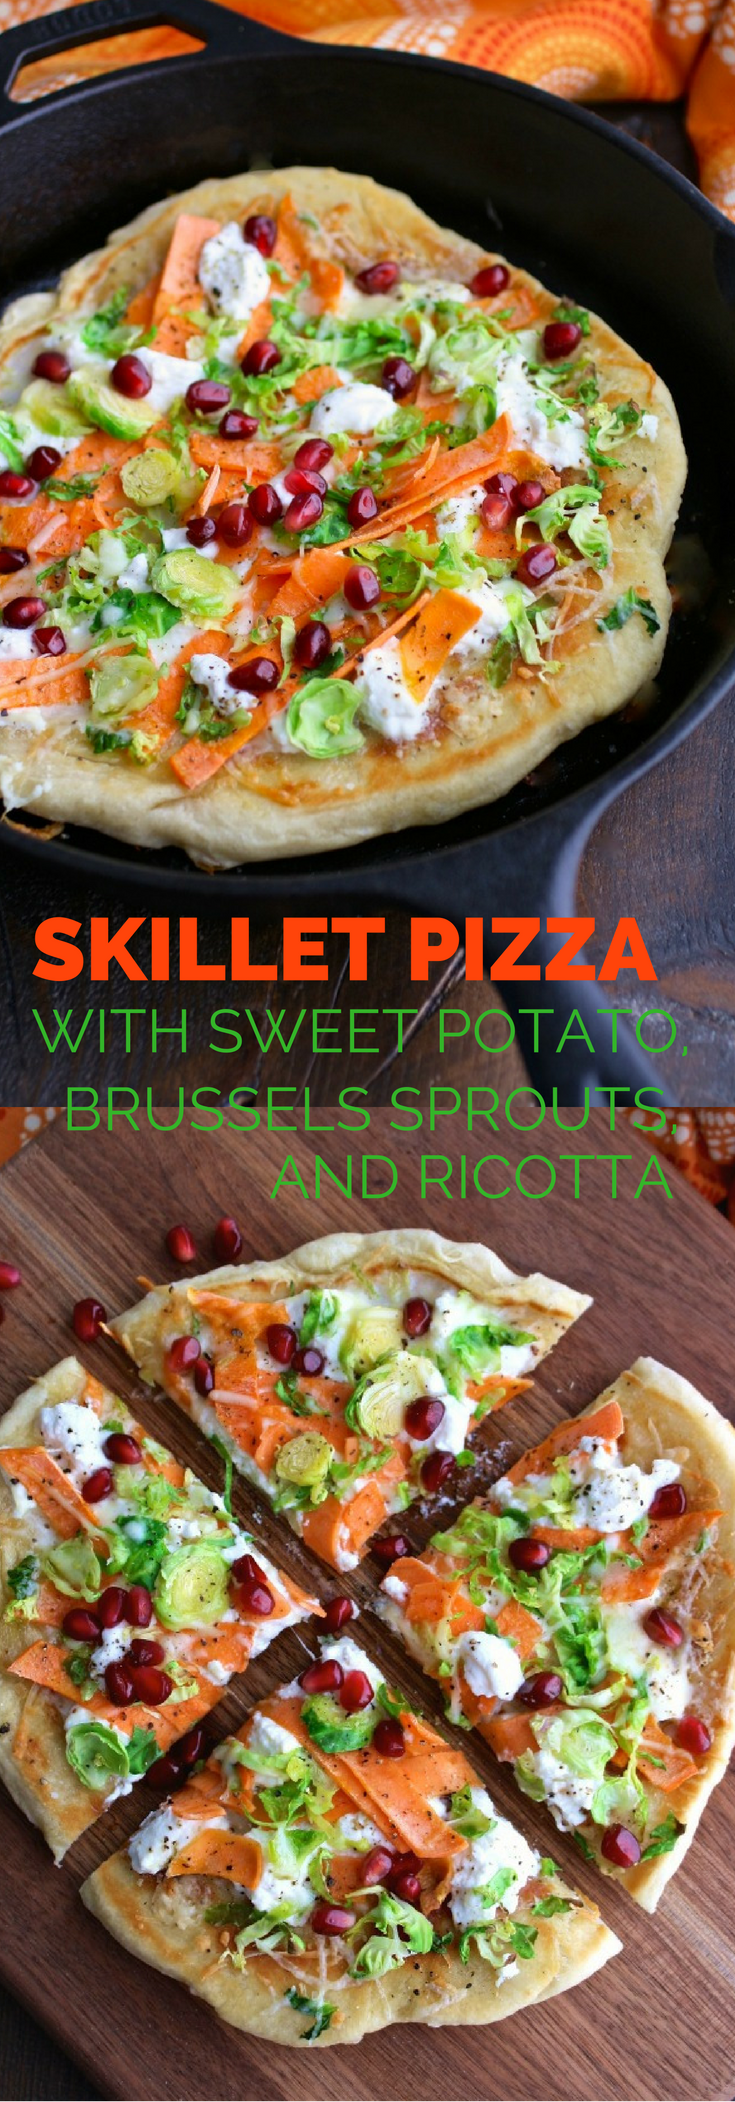 A seasonal pizza: Skillet Pizza with Sweet Potatoes, Brussels Sprouts, and Ricotta!